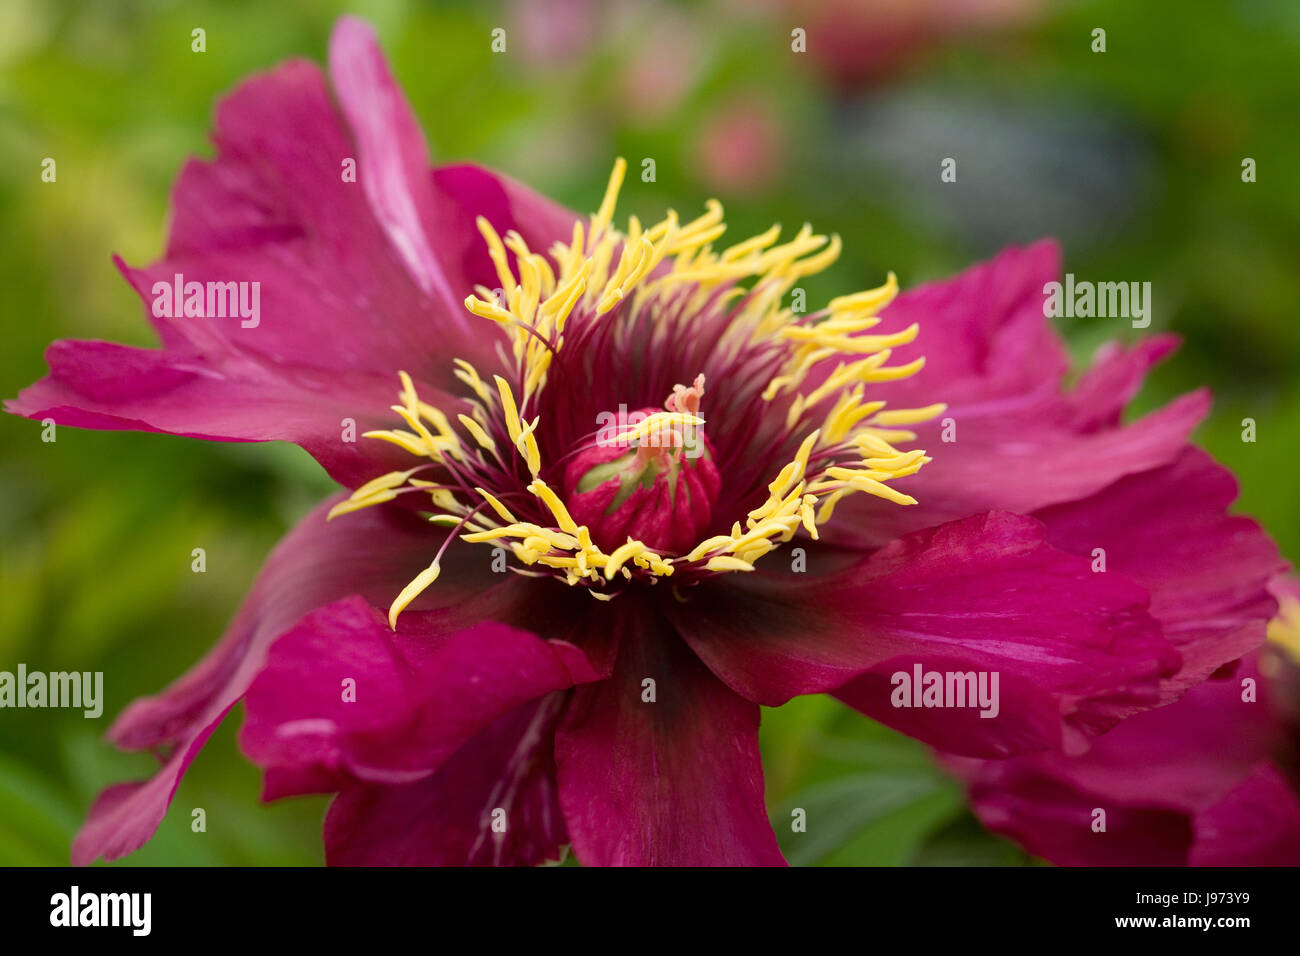 Paeonia intersectional 'Morning Lilac' flower. - Stock Image